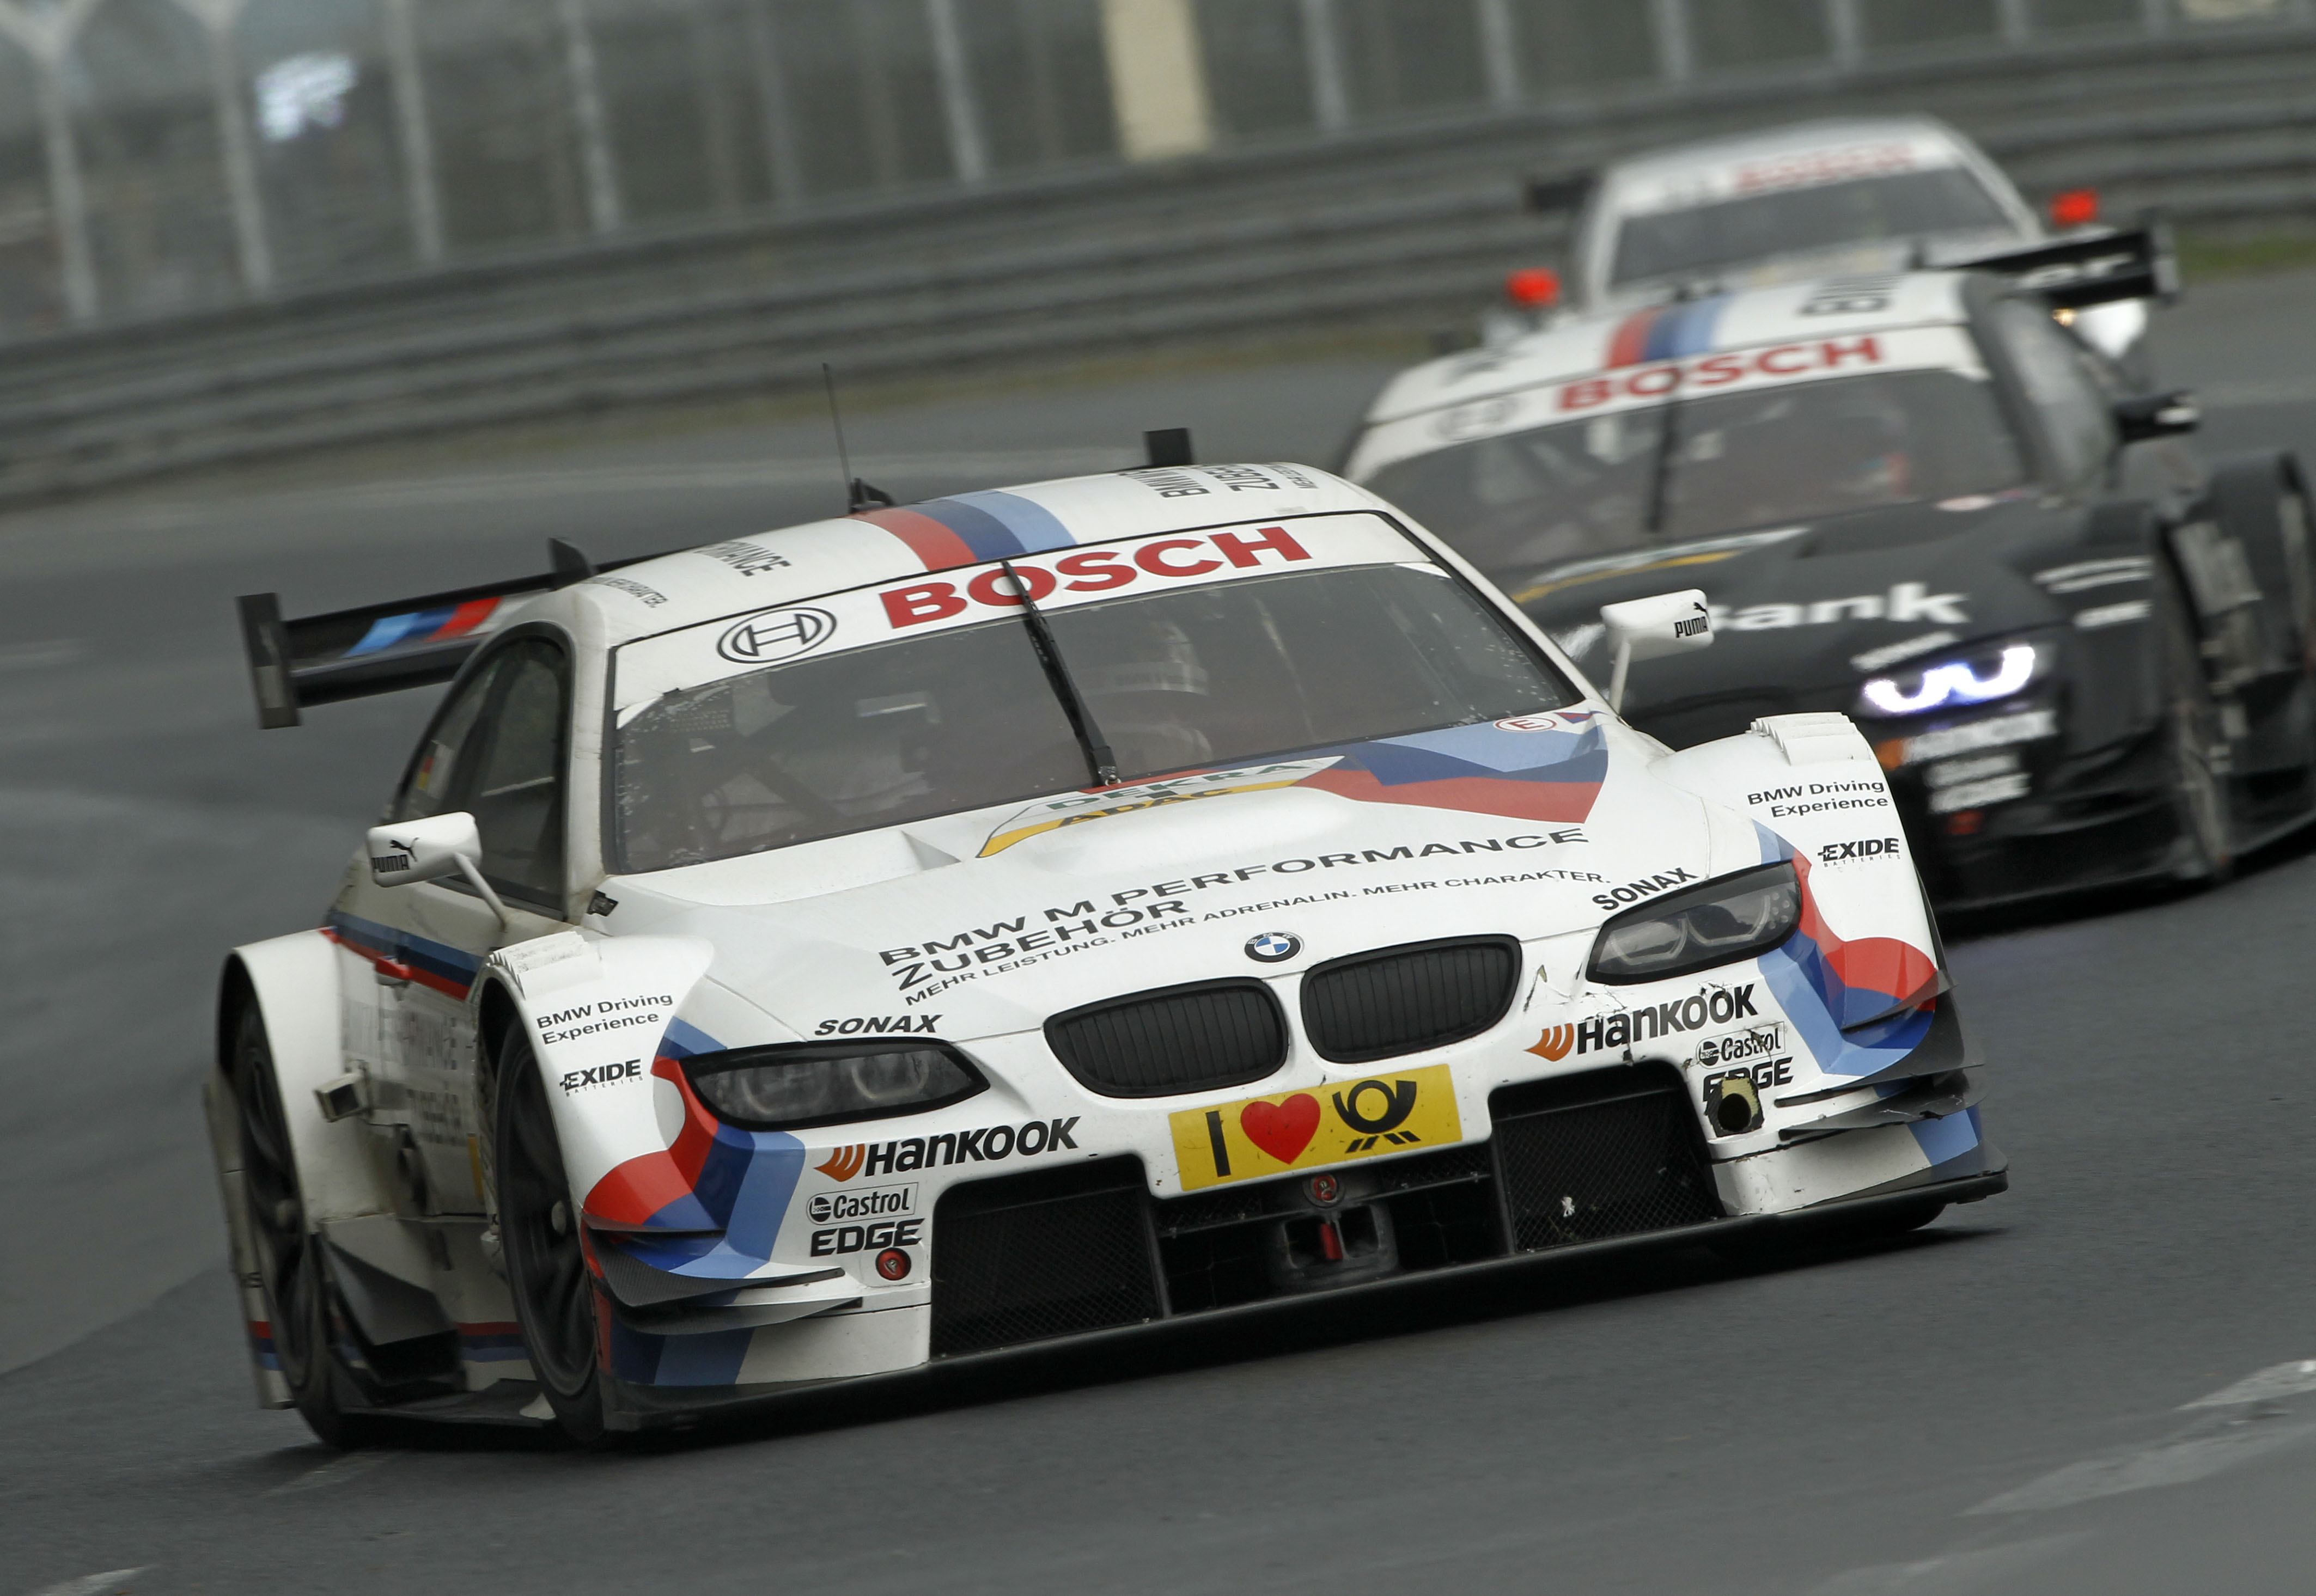 Martin Tomczyk - Bavarian pride at stake for title defence. (Image credit: DTM Media)